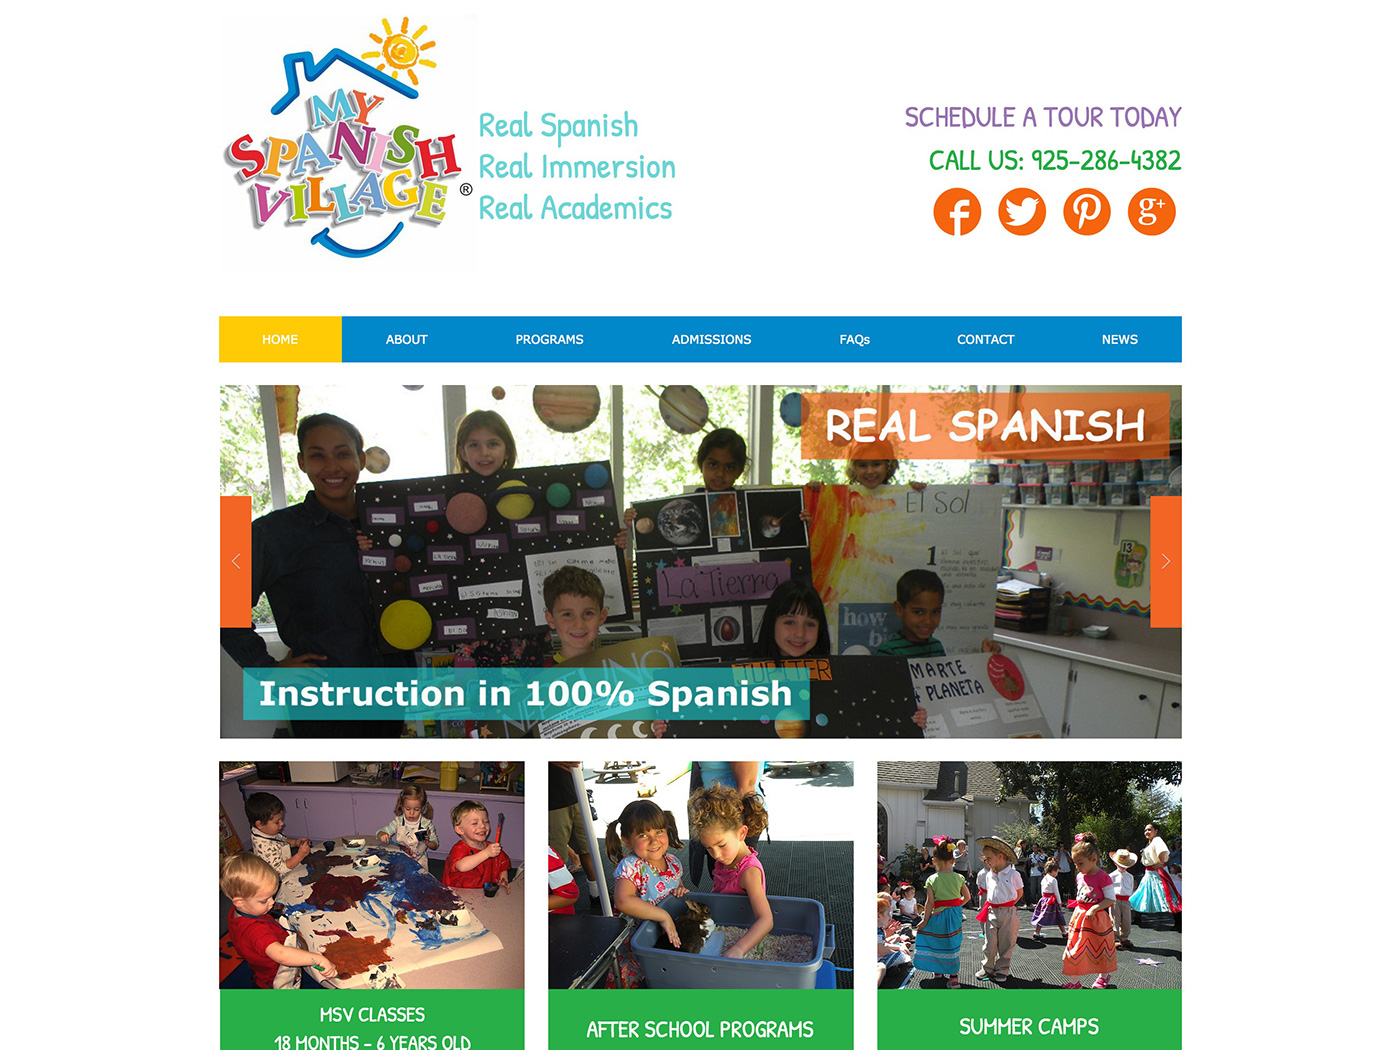 My-Spanish-Village-Spanish-Immersion-Preschool-Website-Design